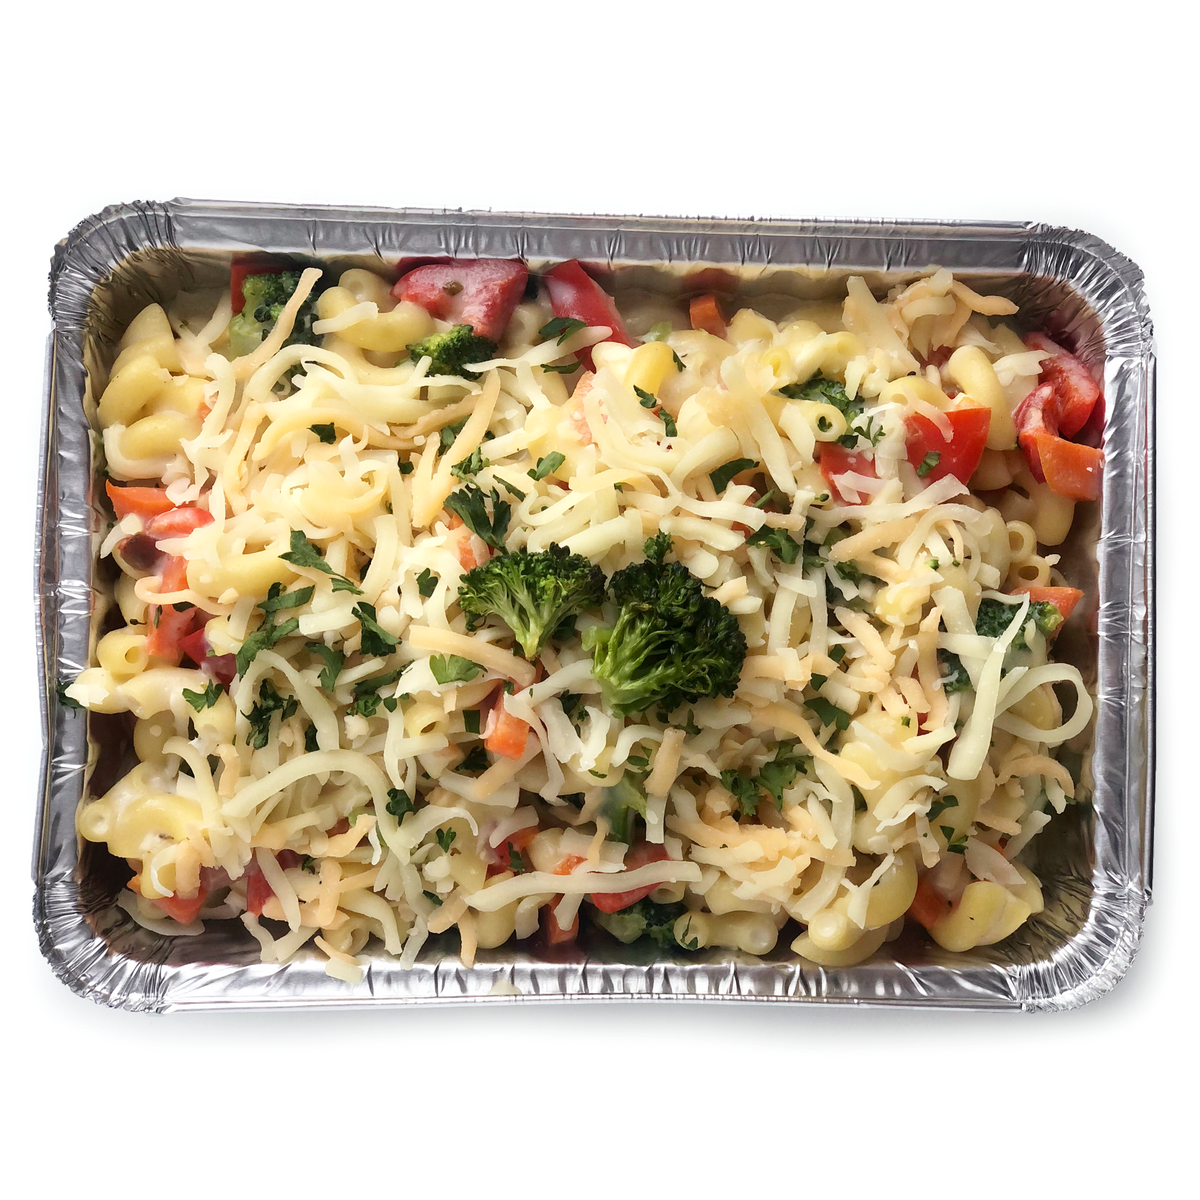 Whippt Kitchen Home meal delivery Veg Mac & Cheese Jan 2021